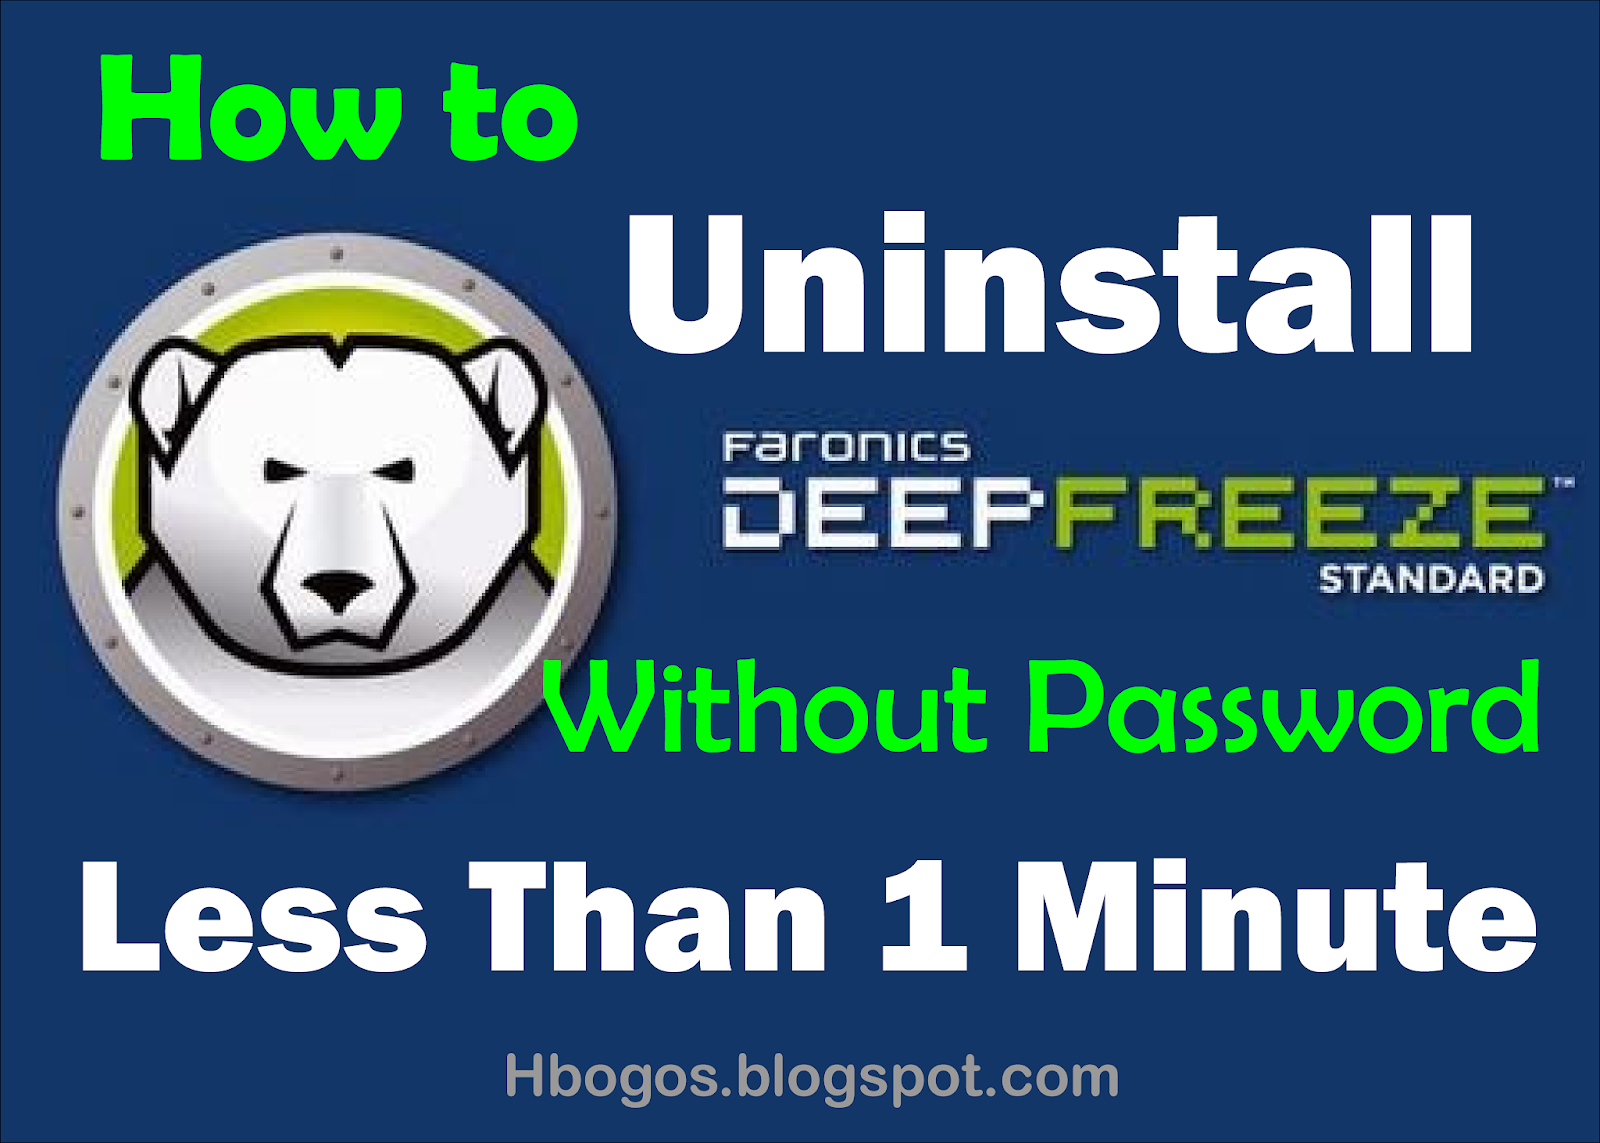 How to get to windows 10 without password | How To Get the WiFi